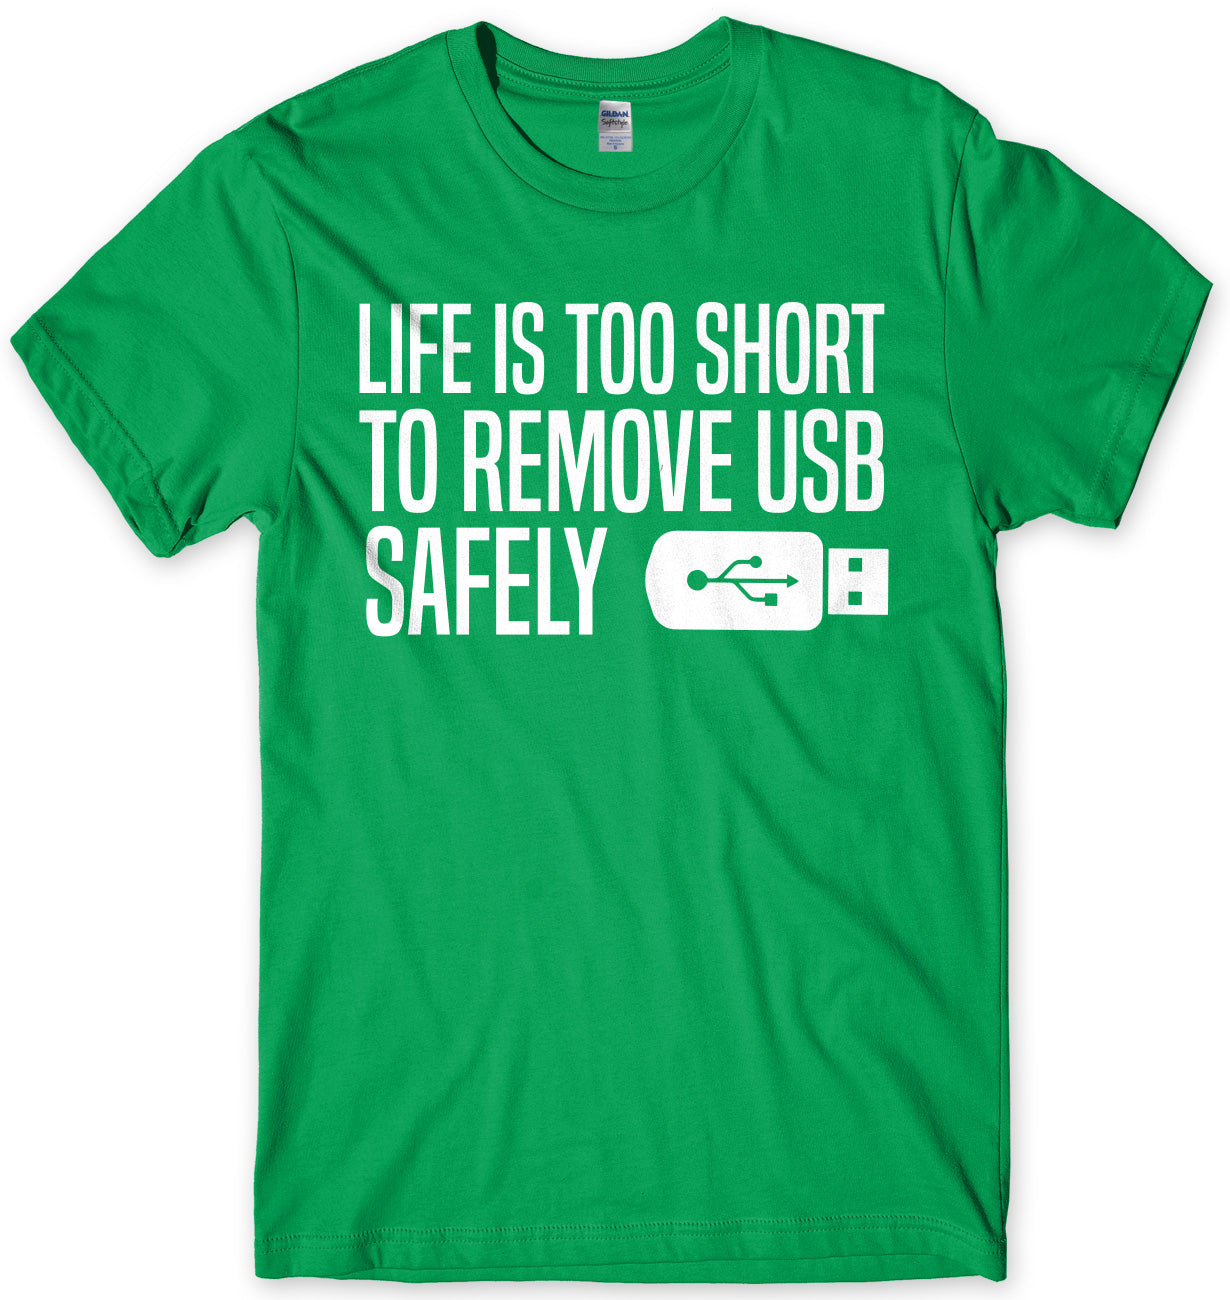 Life Is Too Short To Remove USB Safely Mens Unisex T-Shirt